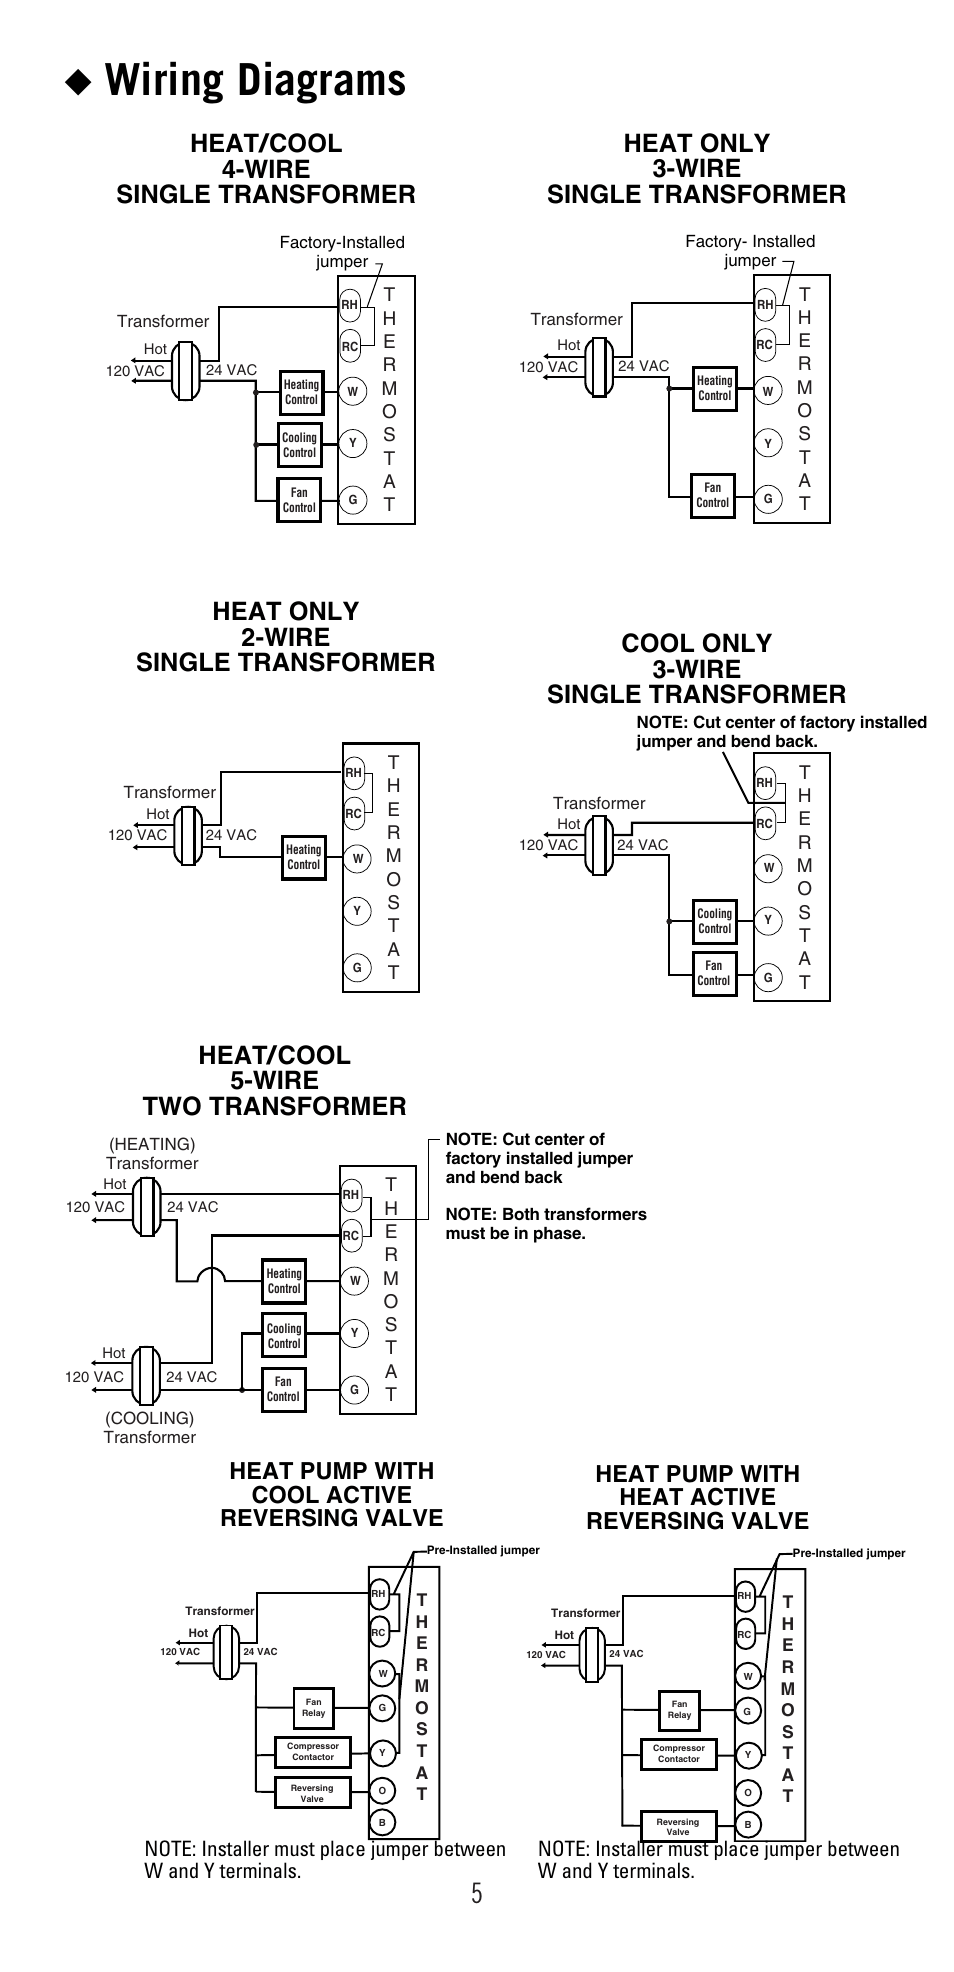 medium resolution of wiring diagrams heat pump with cool active reversing valve heat pump with heat active